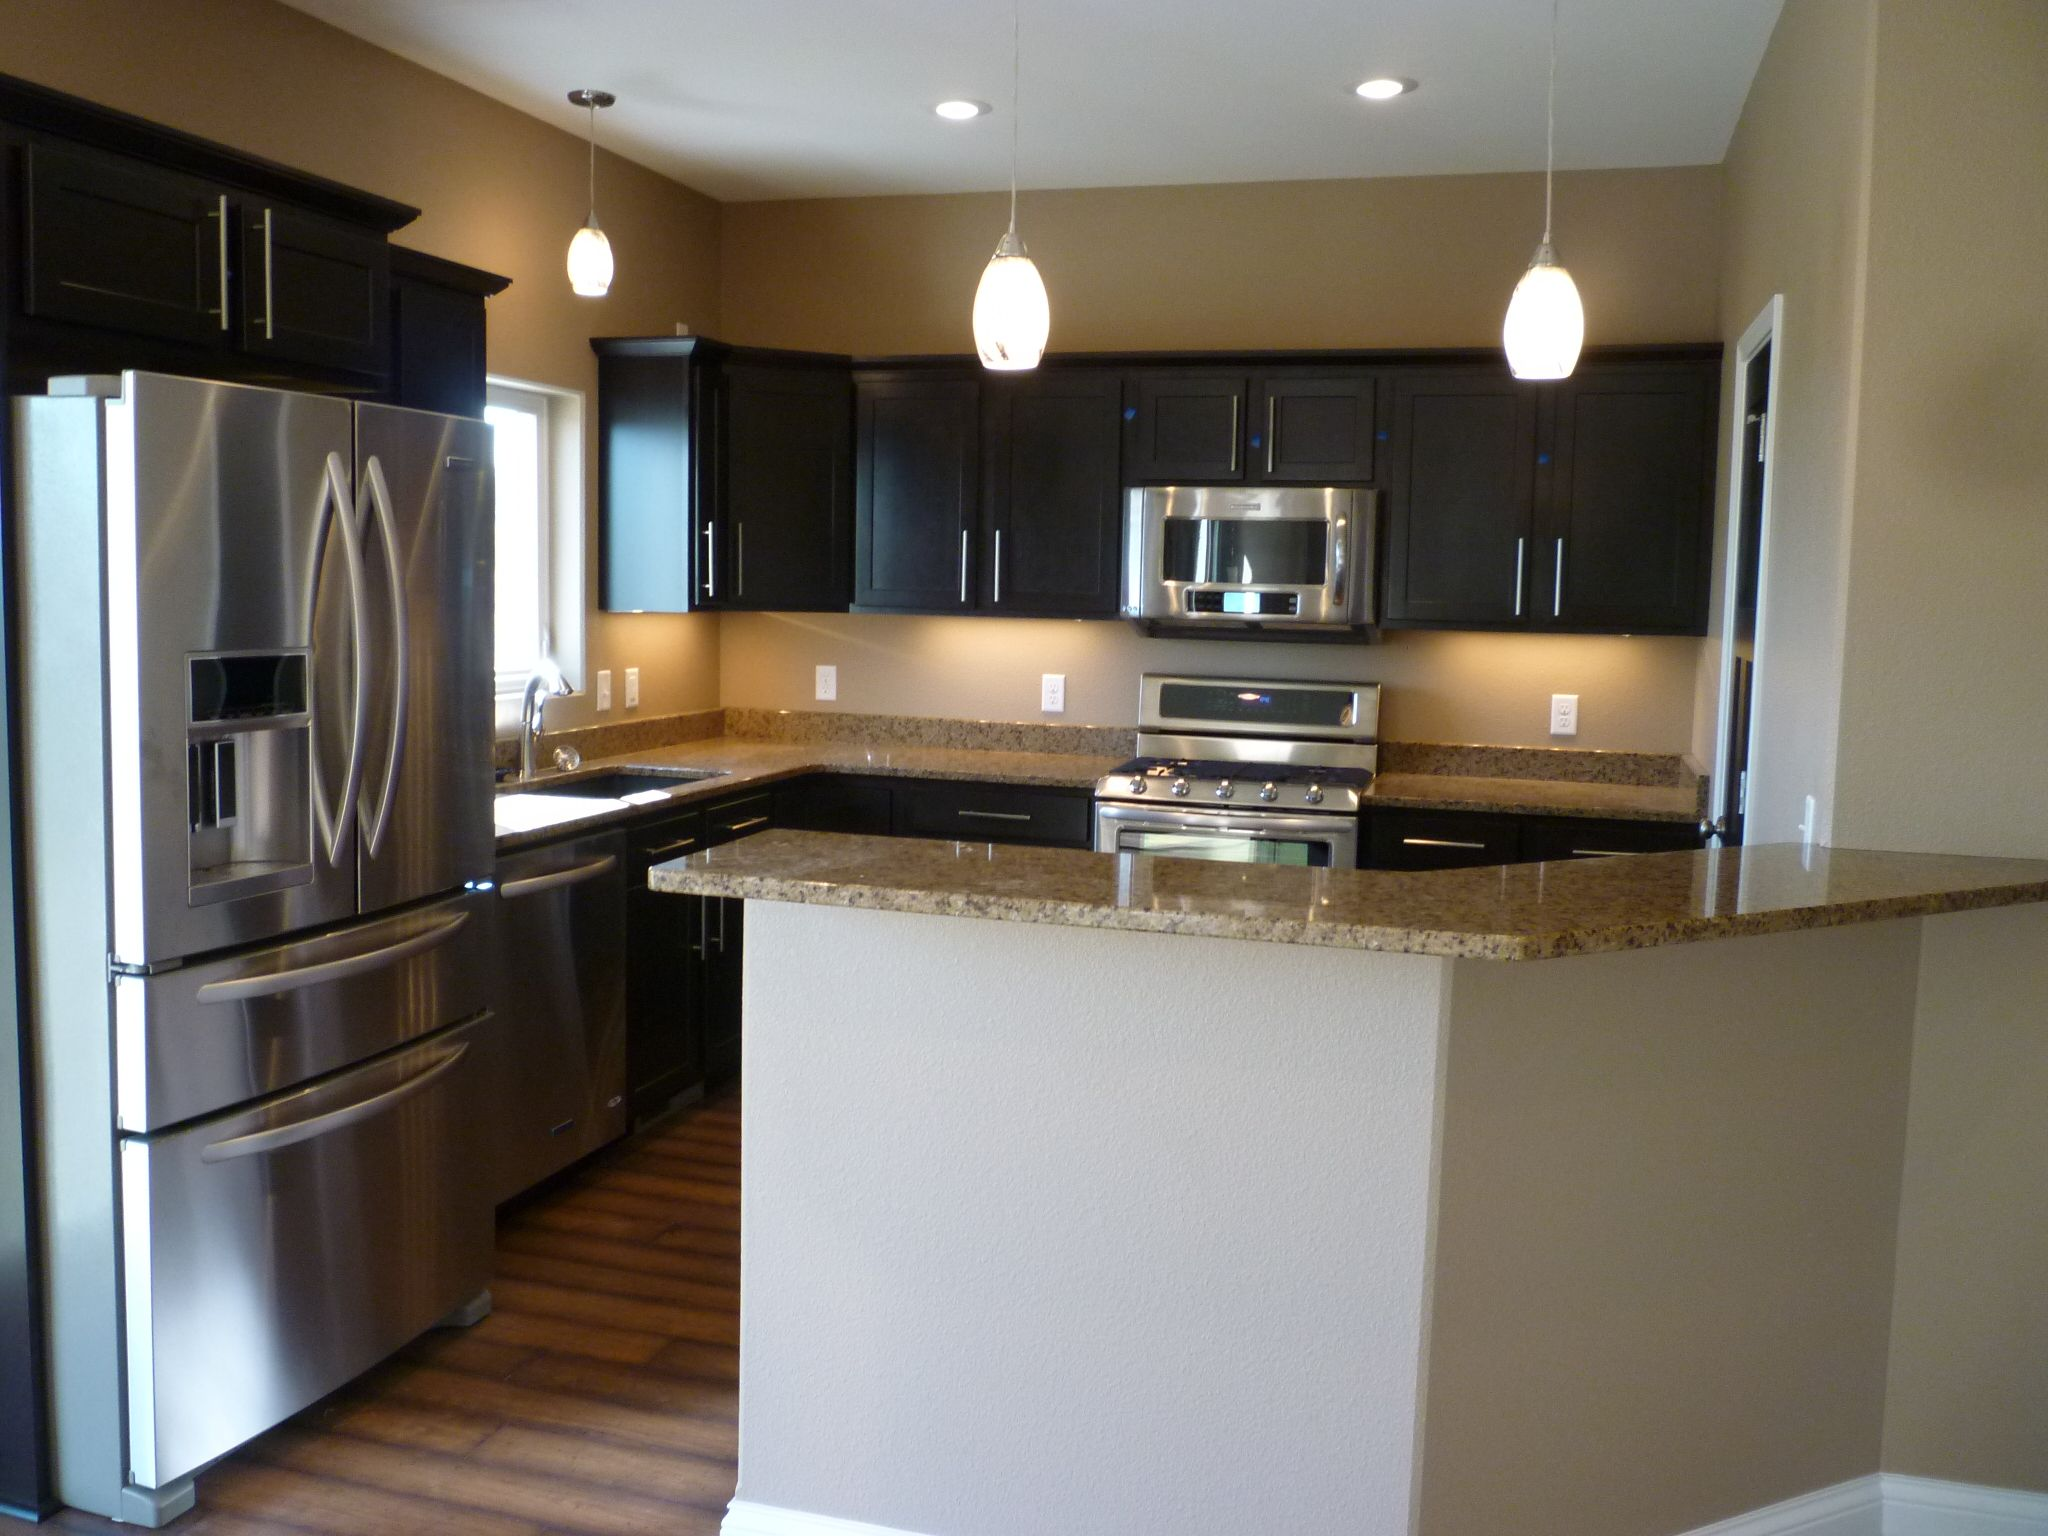 Verity Homes  Verity Homes Kitchens  Pinterest  Custom Design Amazing Custom Design Kitchen 2018